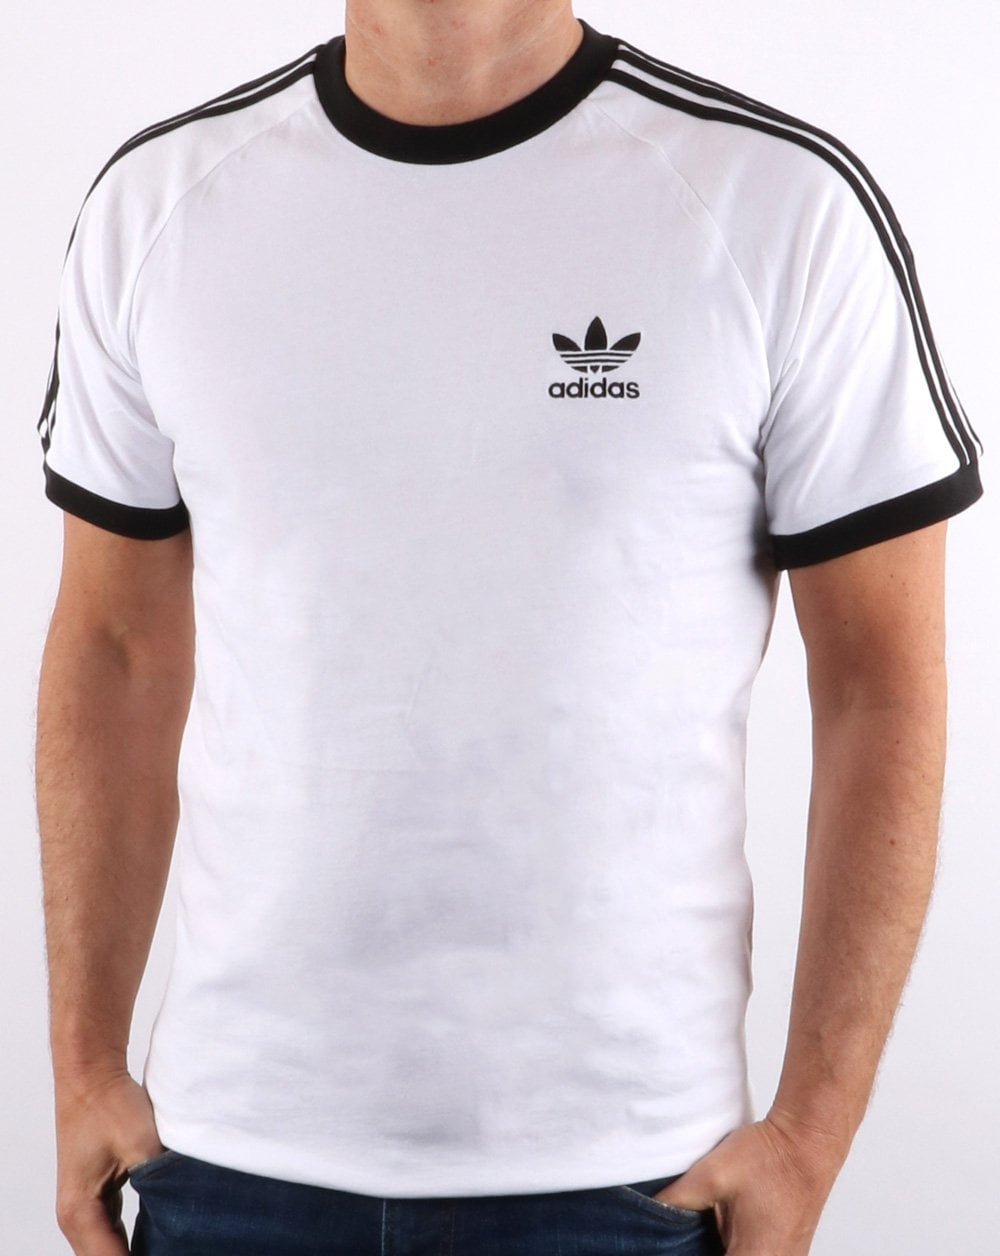 b98f8f9f524b1d Adidas Originals Retro 3 Stripes T Shirt White | 80s casual classics